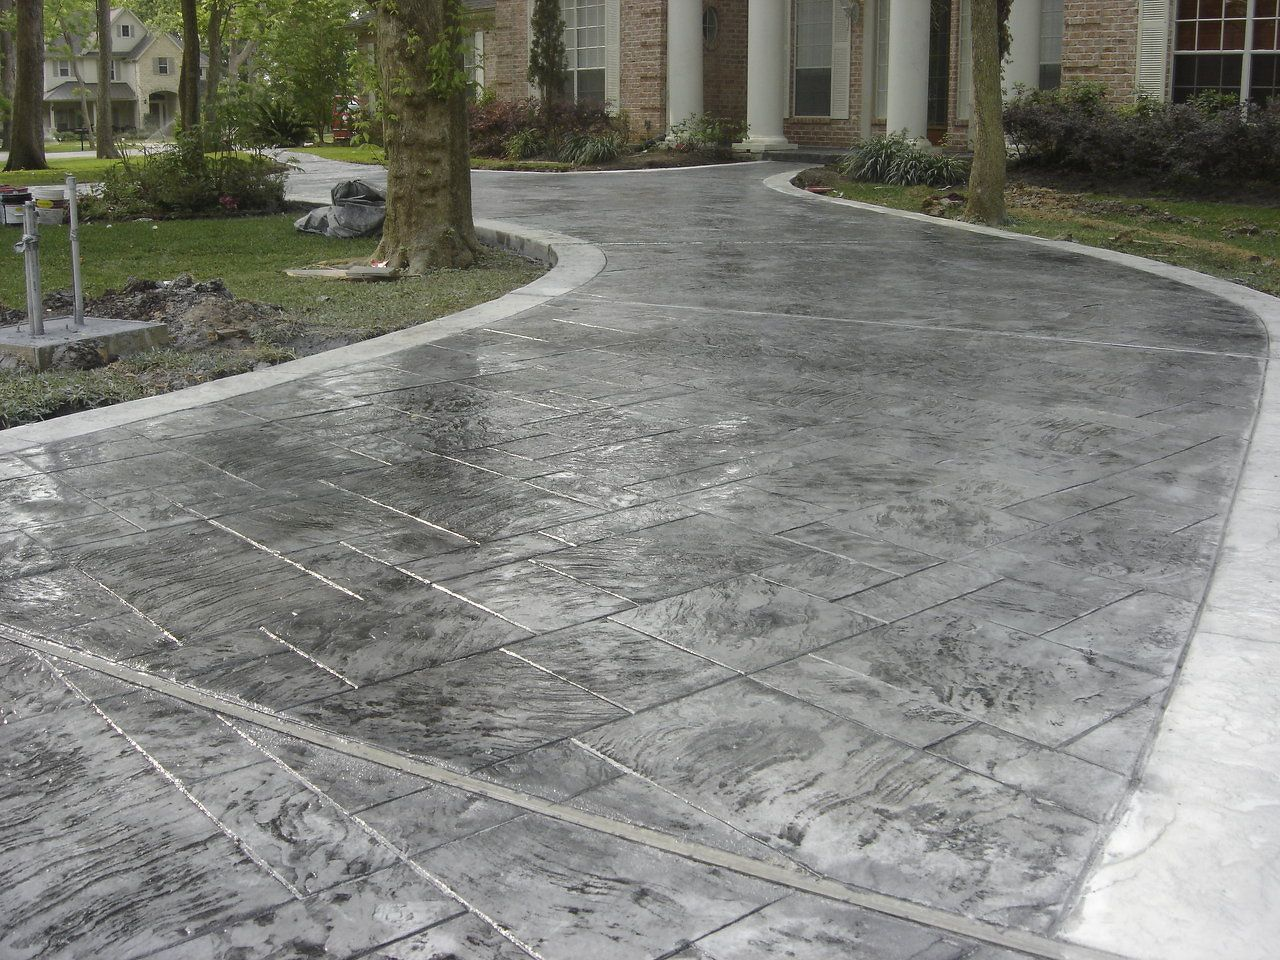 Stamped Concrete Design Ideas concrete patio design ideas concrete patio design 53 pictures photos images 25 Best Ideas About Stamped Concrete Driveway On Pinterest Stamped Concrete Stamped Concrete Patterns And Stamped